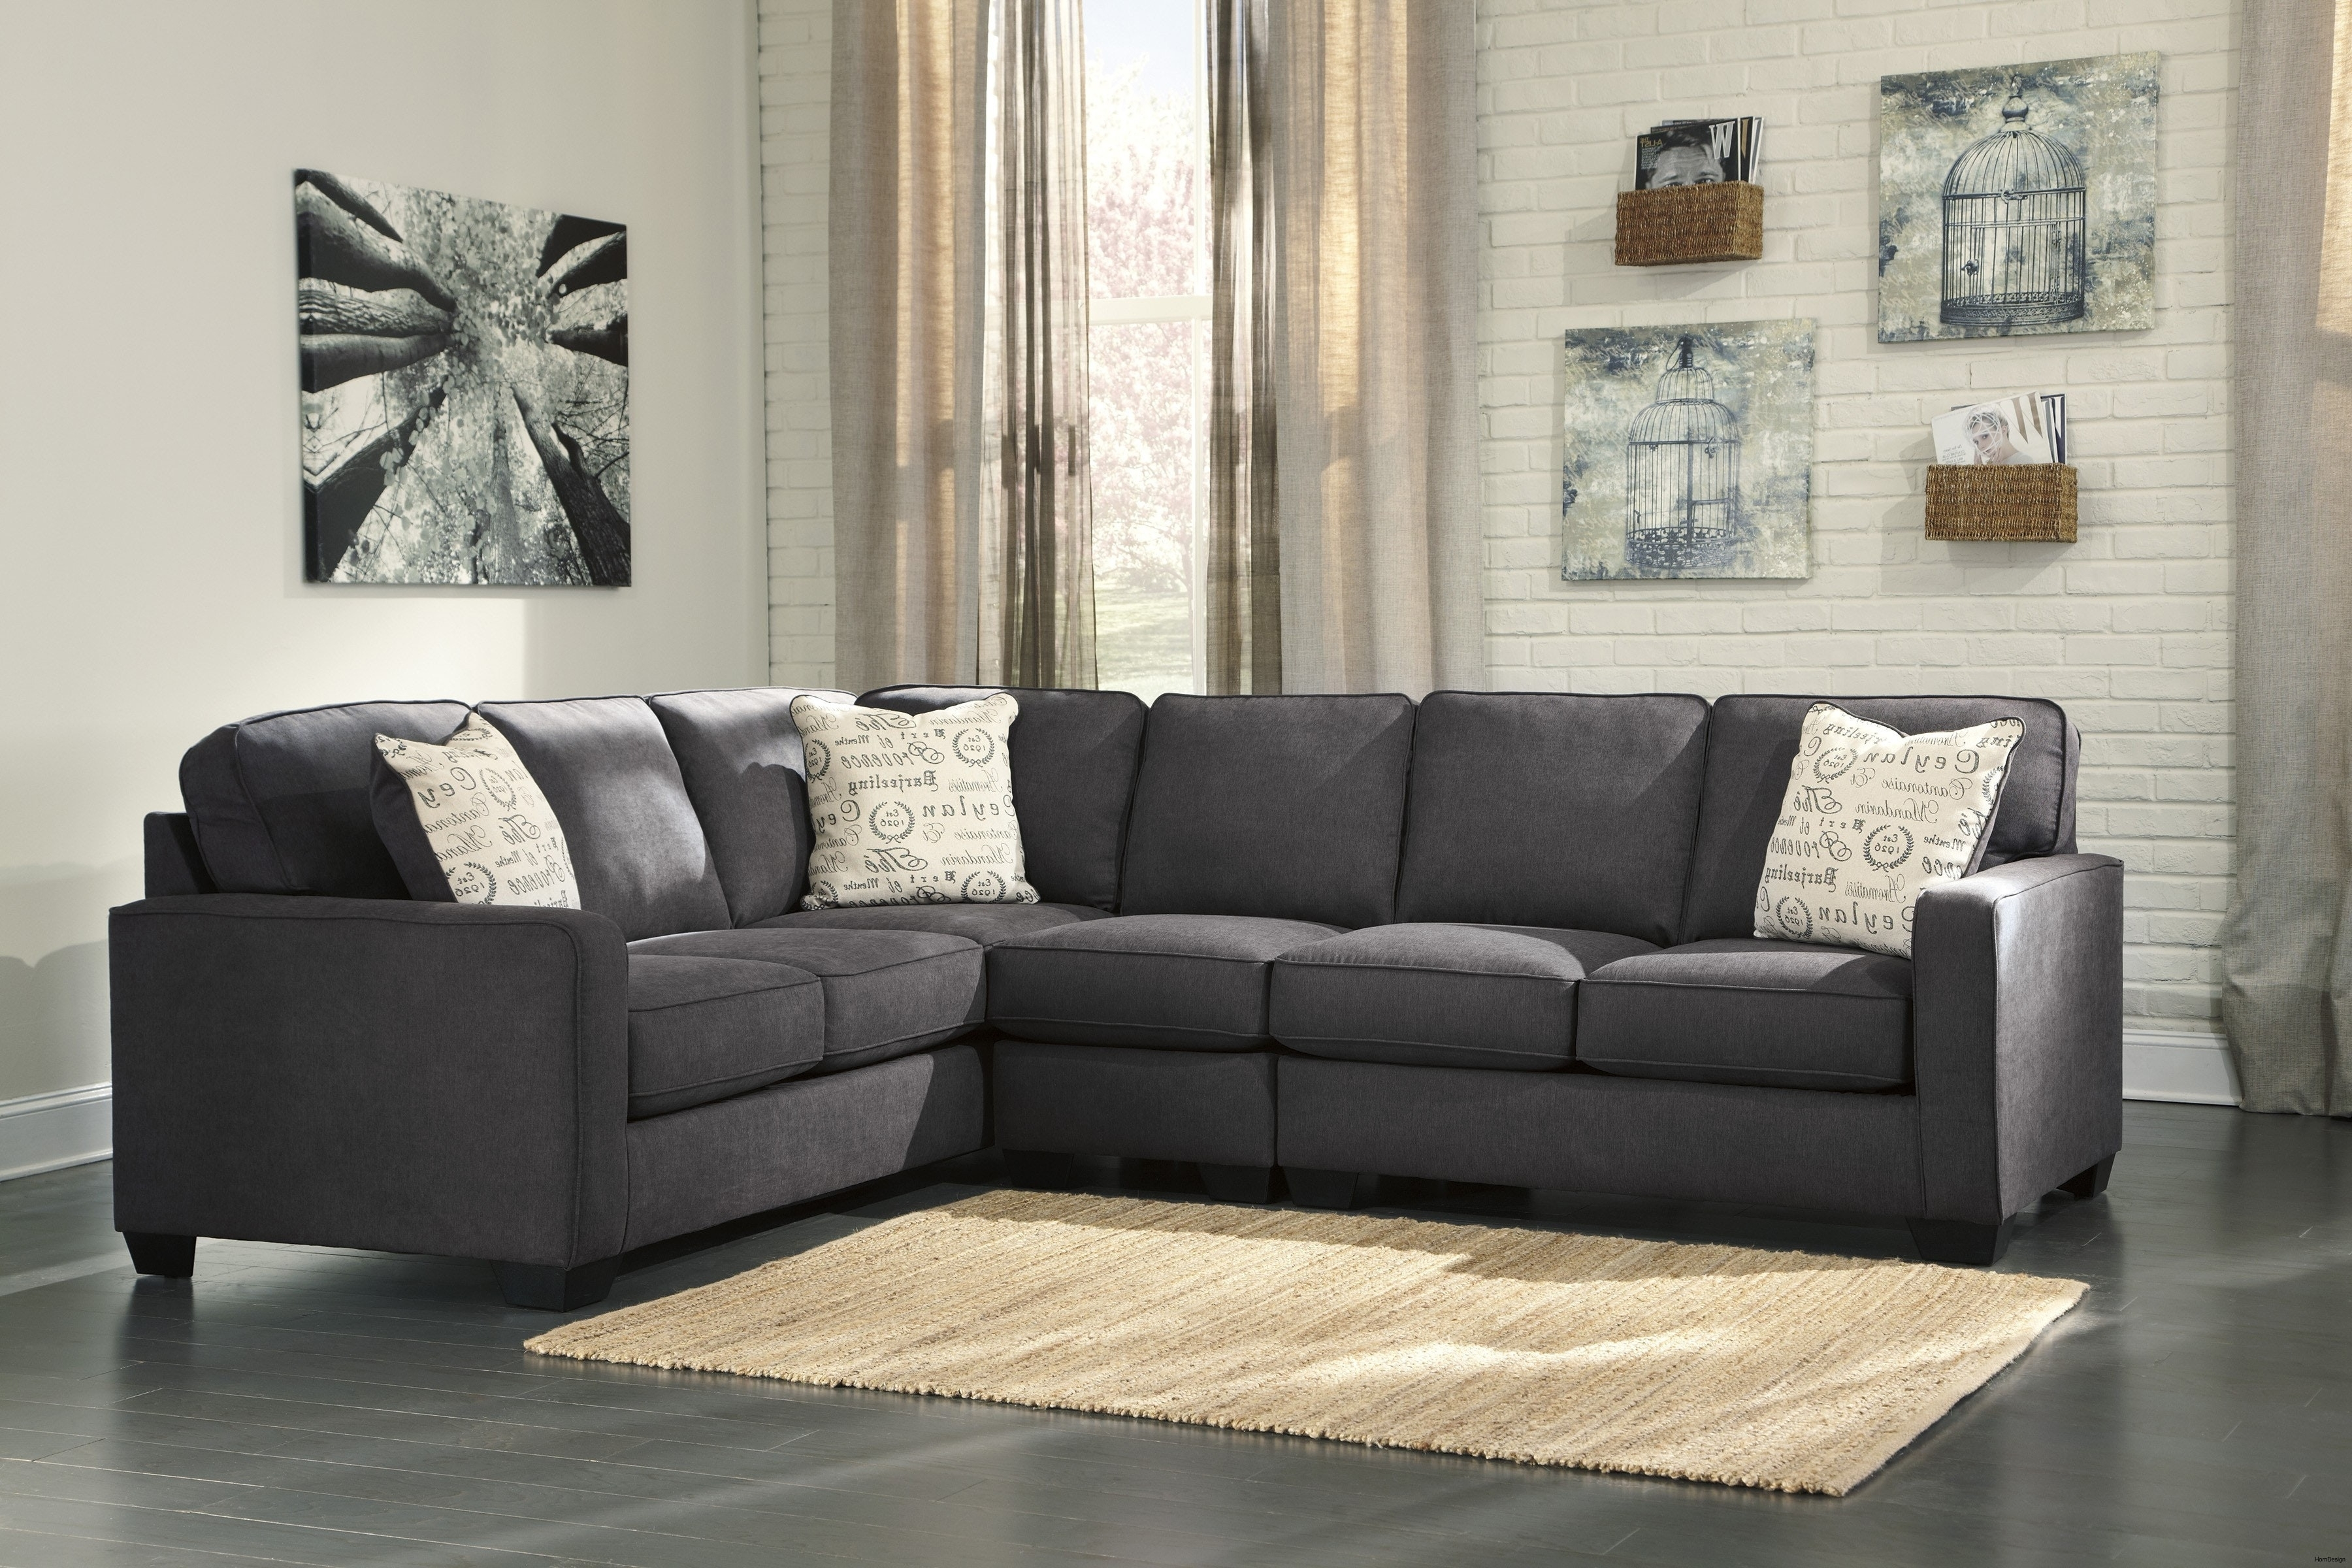 3 Piece Sectional Sofa With Chaise Reviews | Baci Living Room Pertaining To Malbry Point 3 Piece Sectionals With Raf Chaise (Photo 20 of 25)